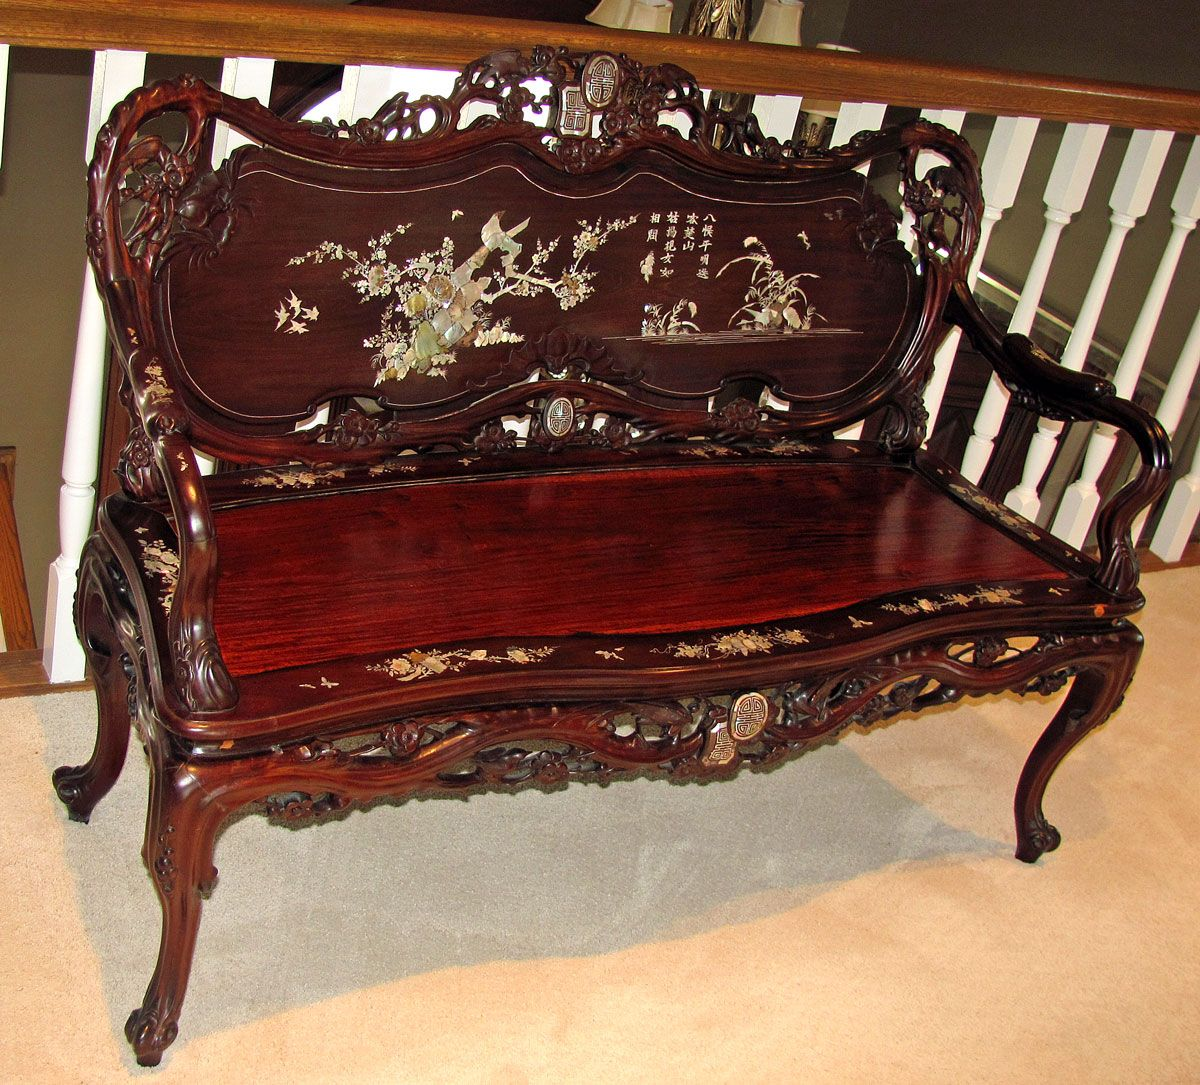 rosewood mother of pearl furniture - Rosewood Mother Of Pearl Furniture Chinese Furniture Set